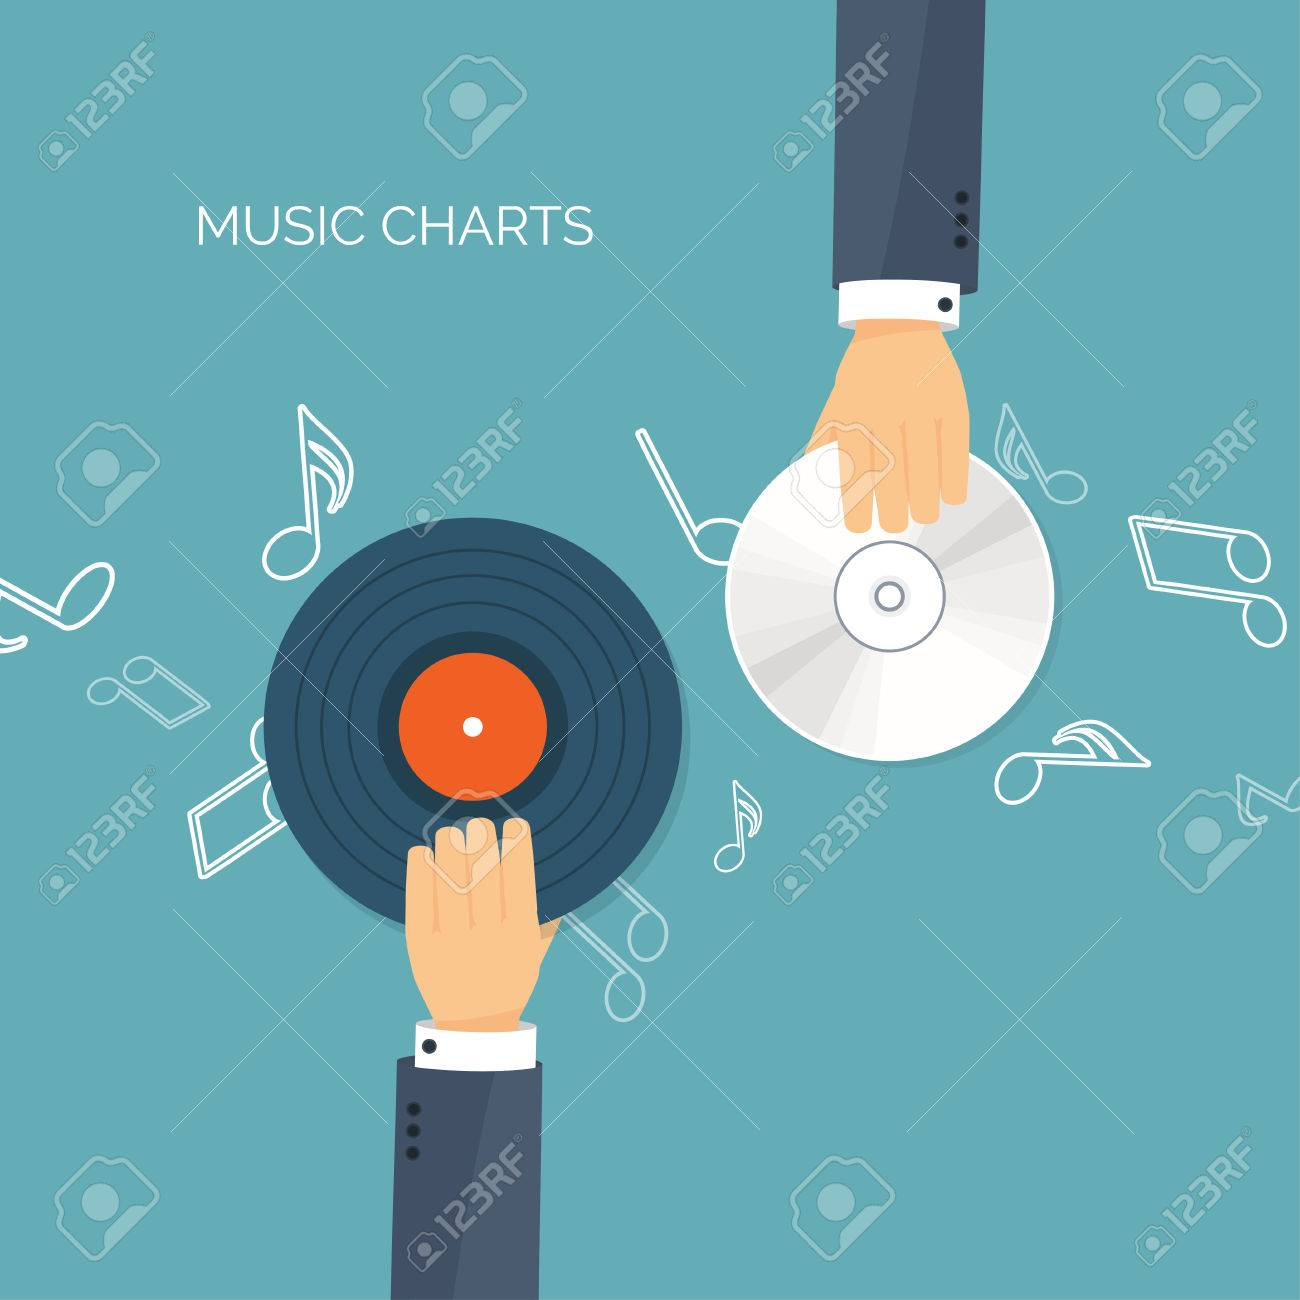 Most Inspiring Wallpaper Music Disk - 54046828-vector-illustration-flat-background-music-production-show-business-mp3-compact-disk-voice-recording-  Snapshot_878543.jpg